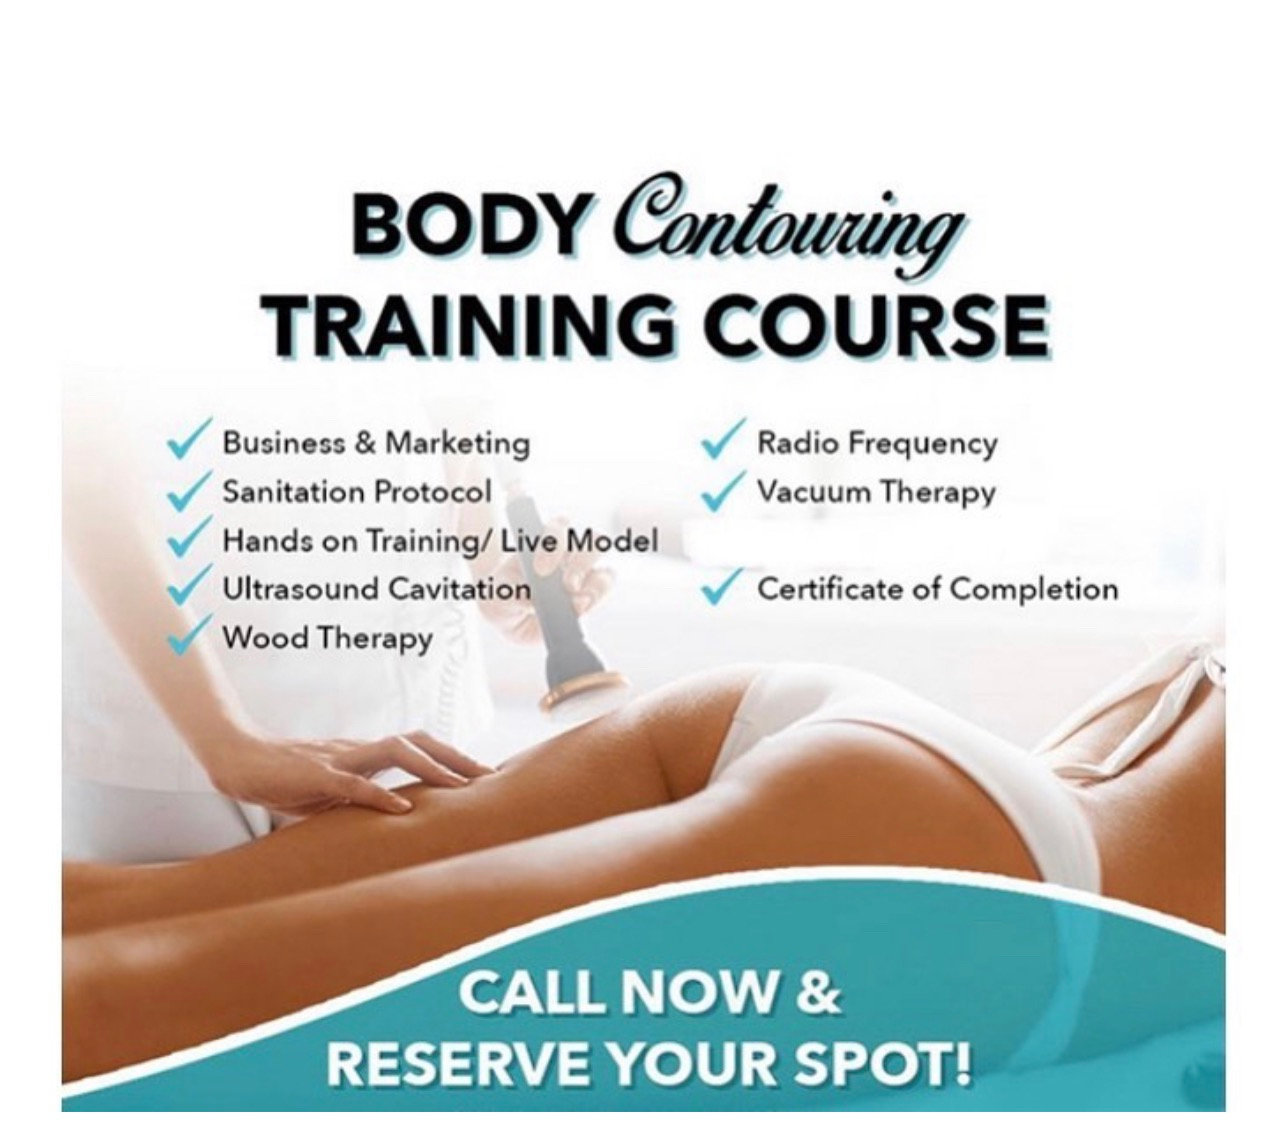 Exclusive BodyContouring Training Course